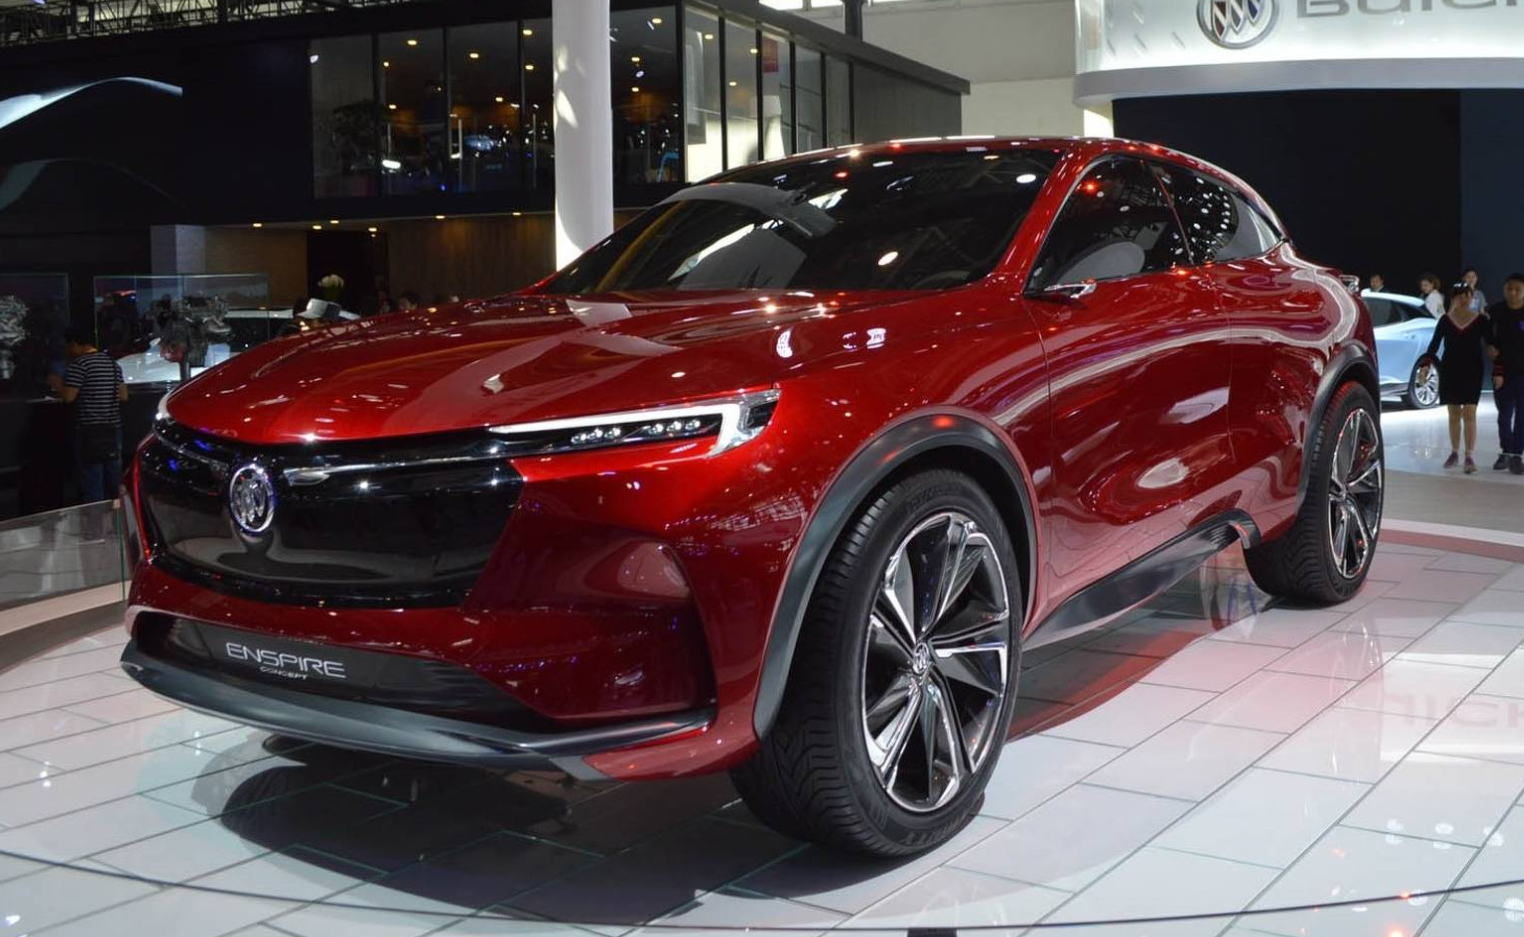 2021 buick enspire release date price interior – in fact